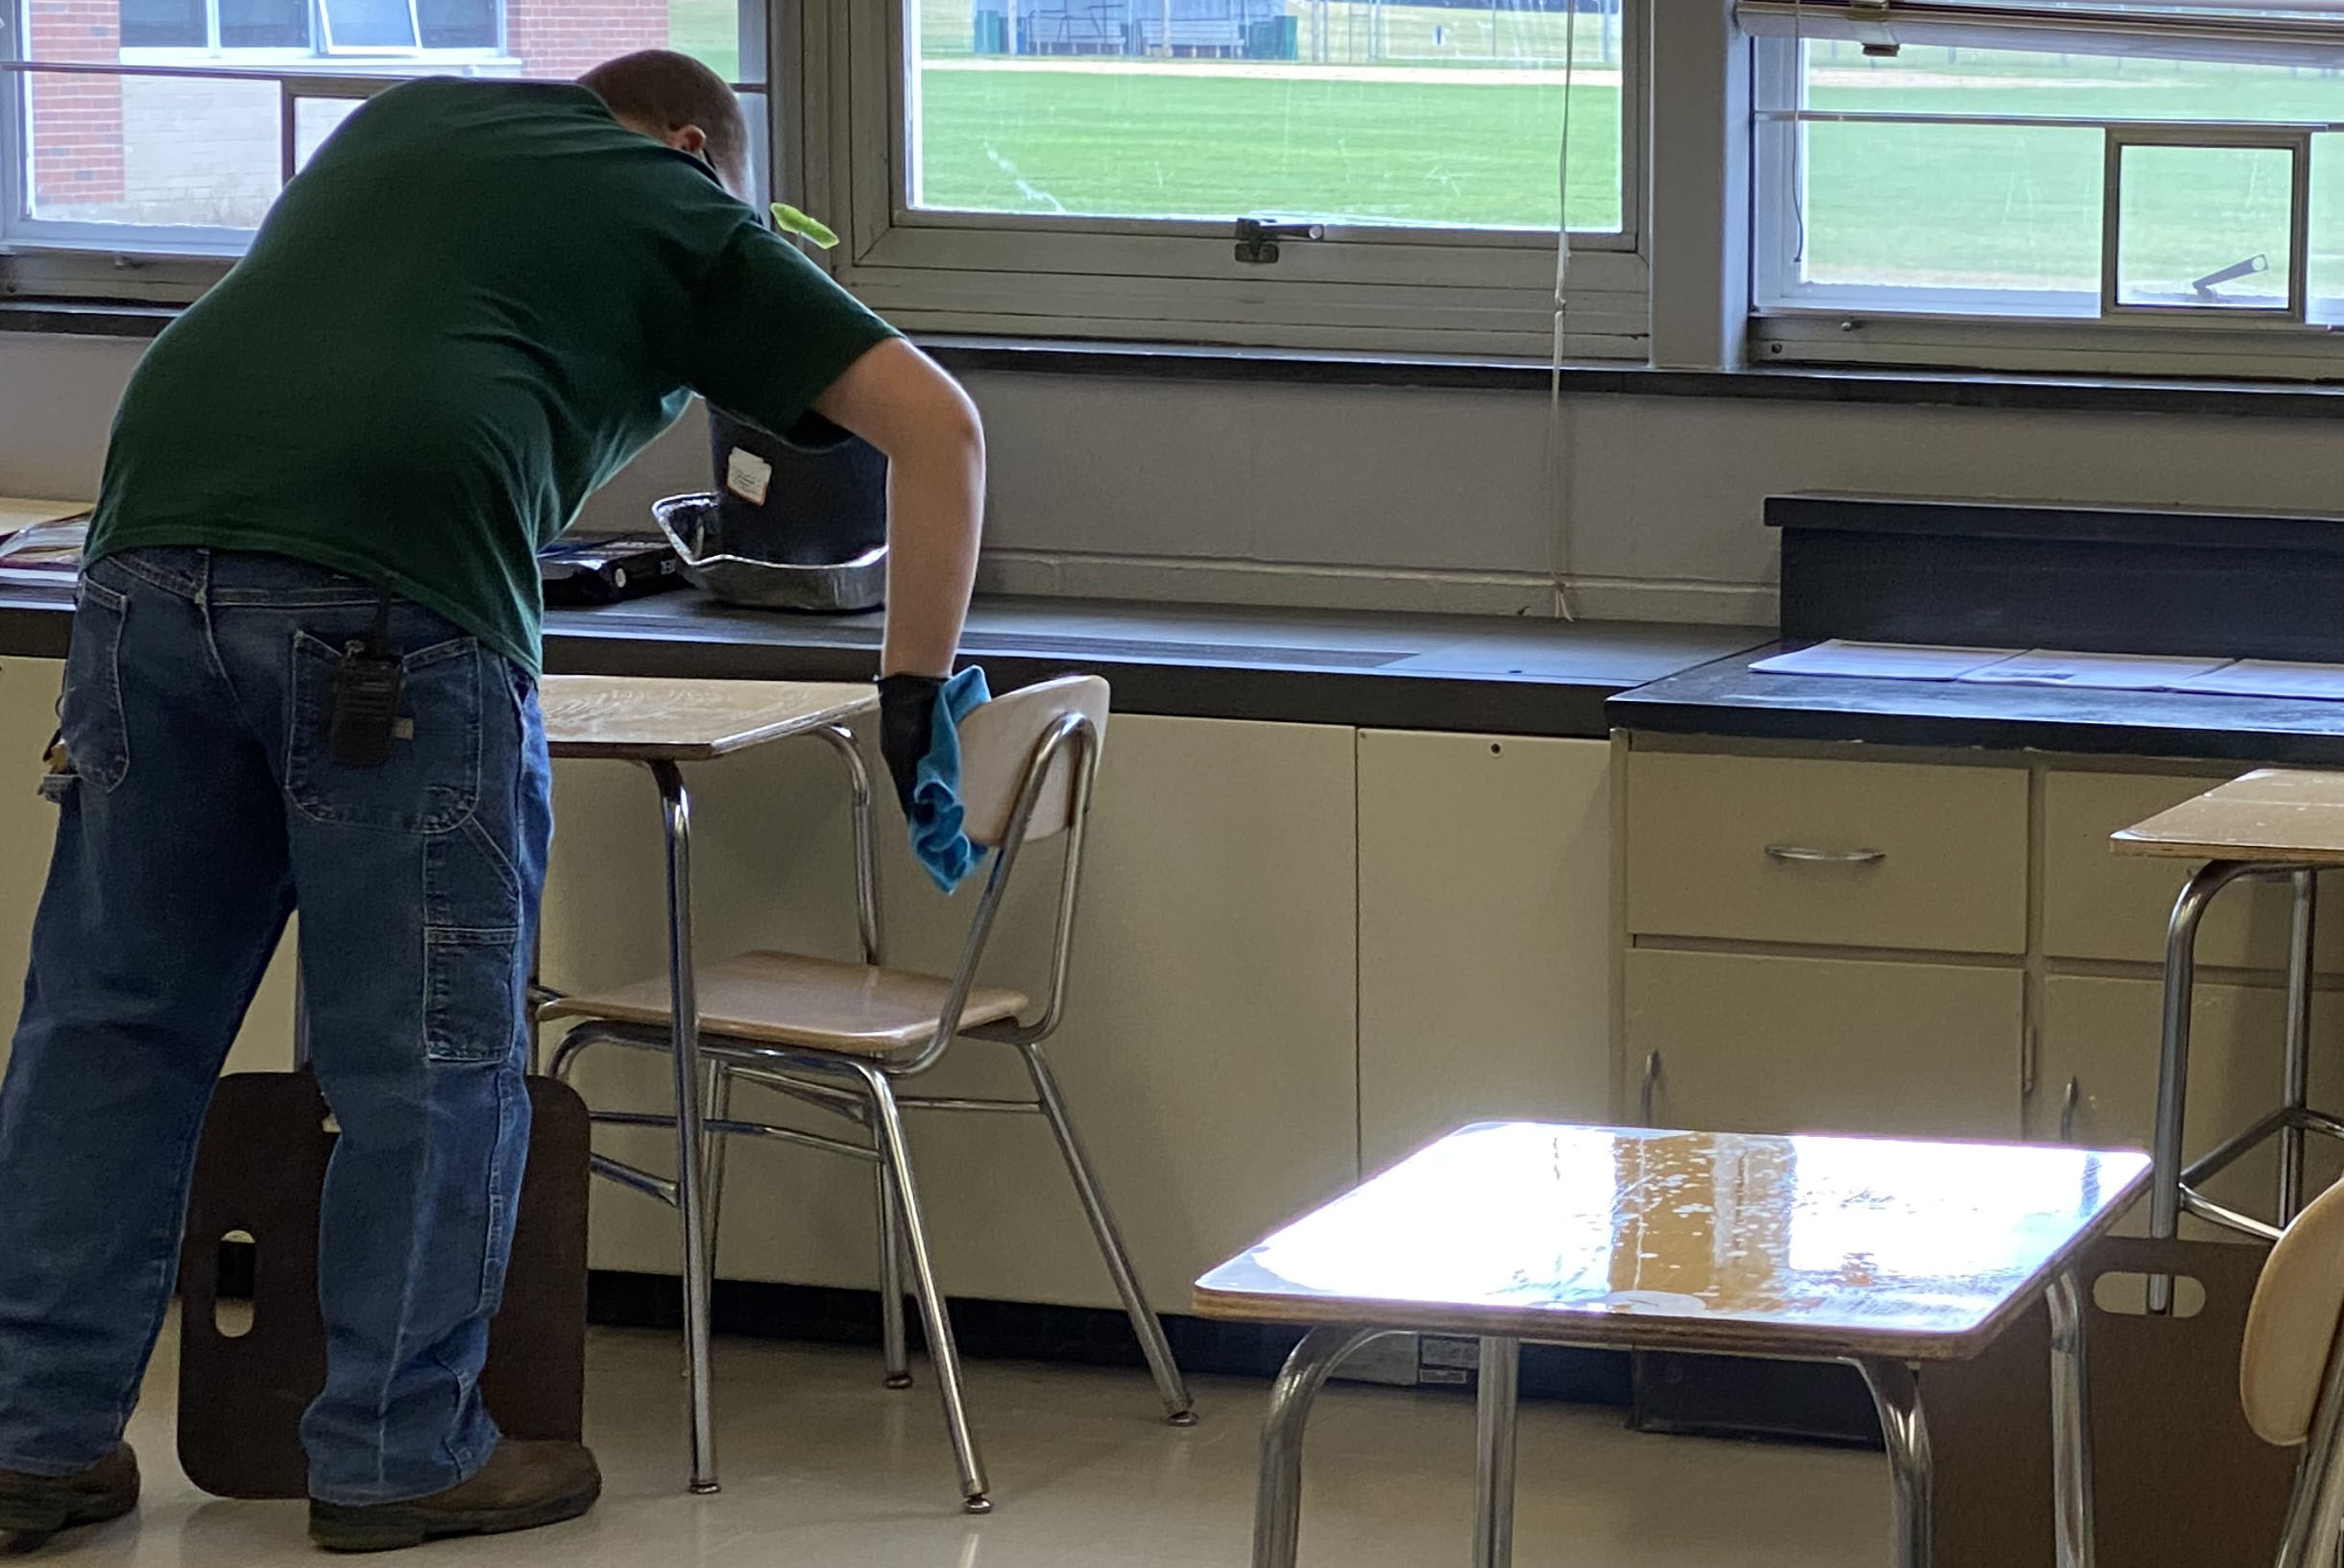 staff cleaning a classroom